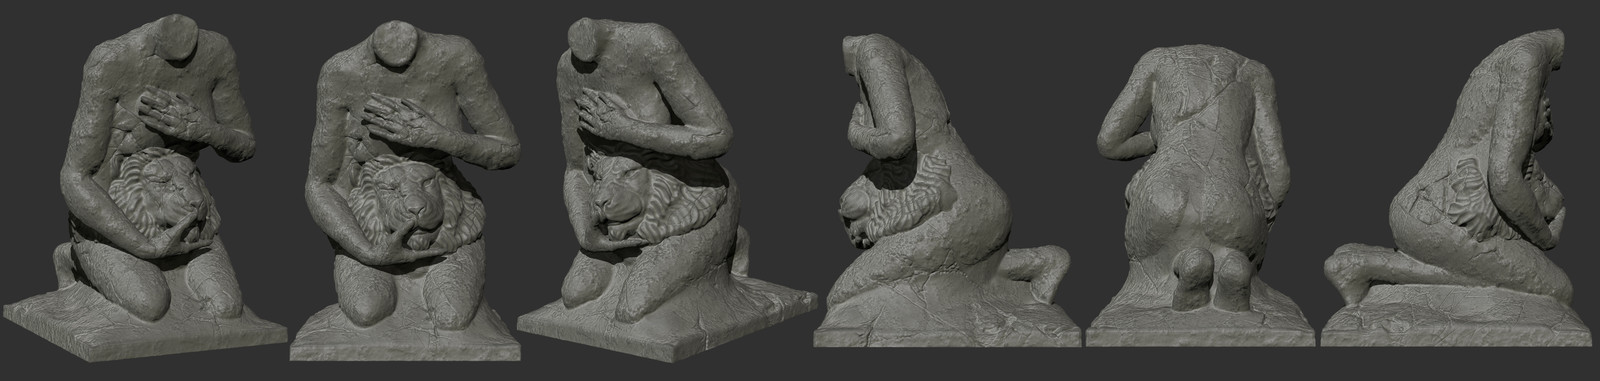 High Poly model in Zbrush